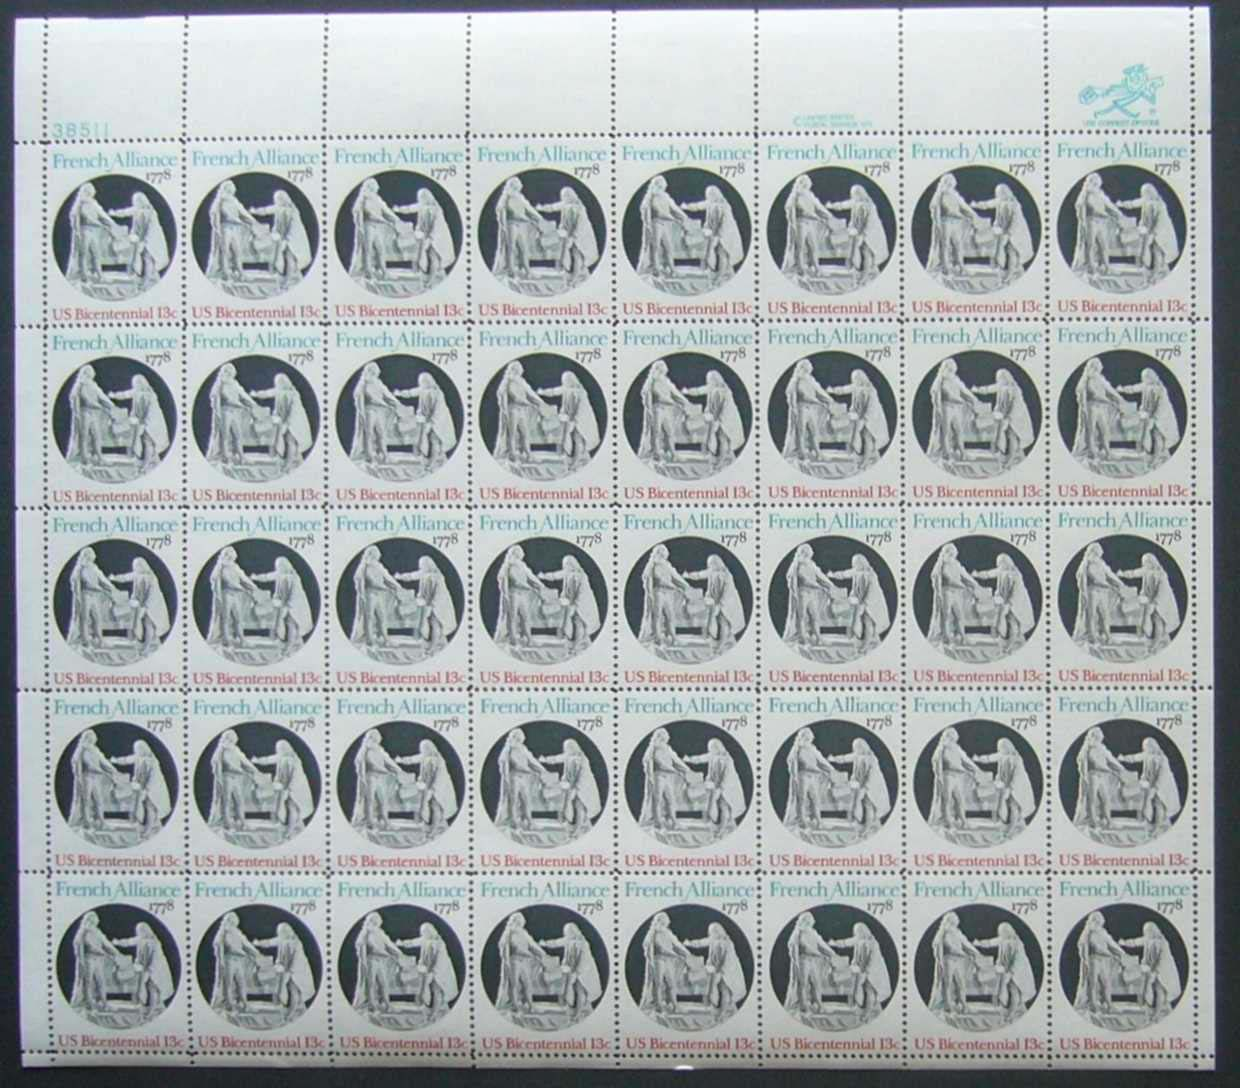 "Scott 1753 Sheet (13 cents) <p> <a href=""/images/USA-Scott-1753-Sheet.jpg""><font color=green><b>View the image</a></b></font>"